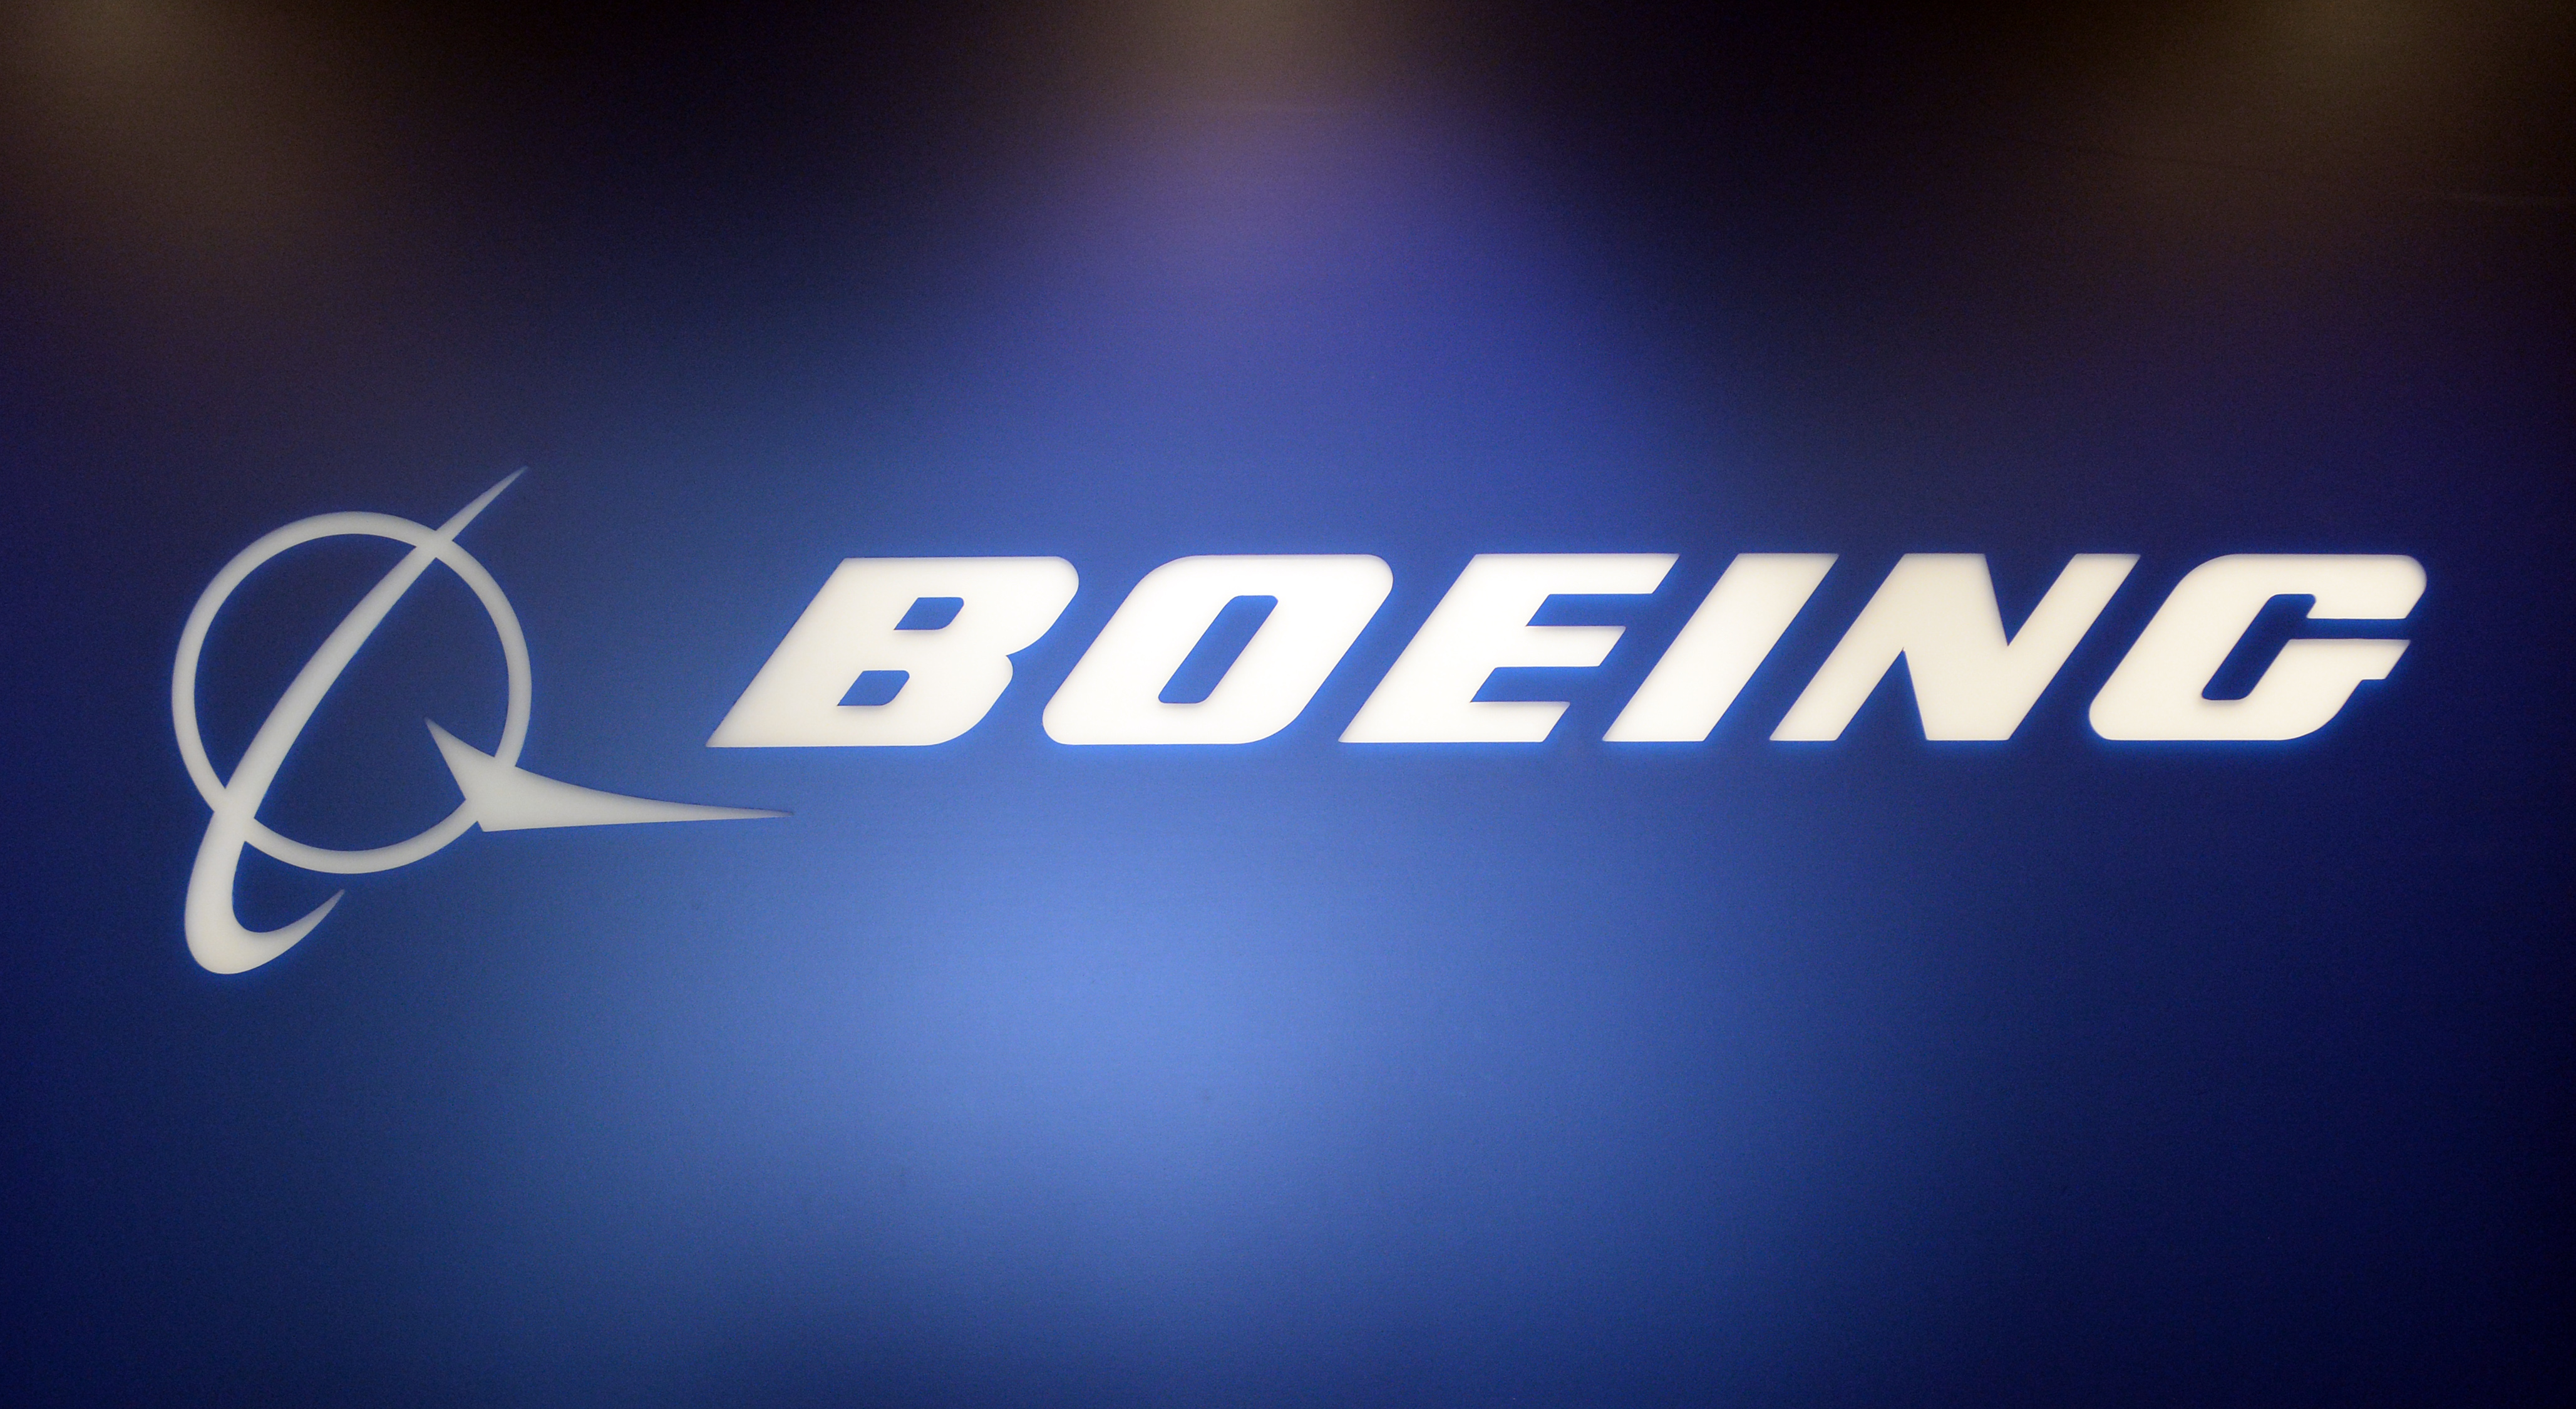 Awesome Boeing Logos 13 In Create Logo Online With Boeing Logos - Boeing Logo Vector PNG